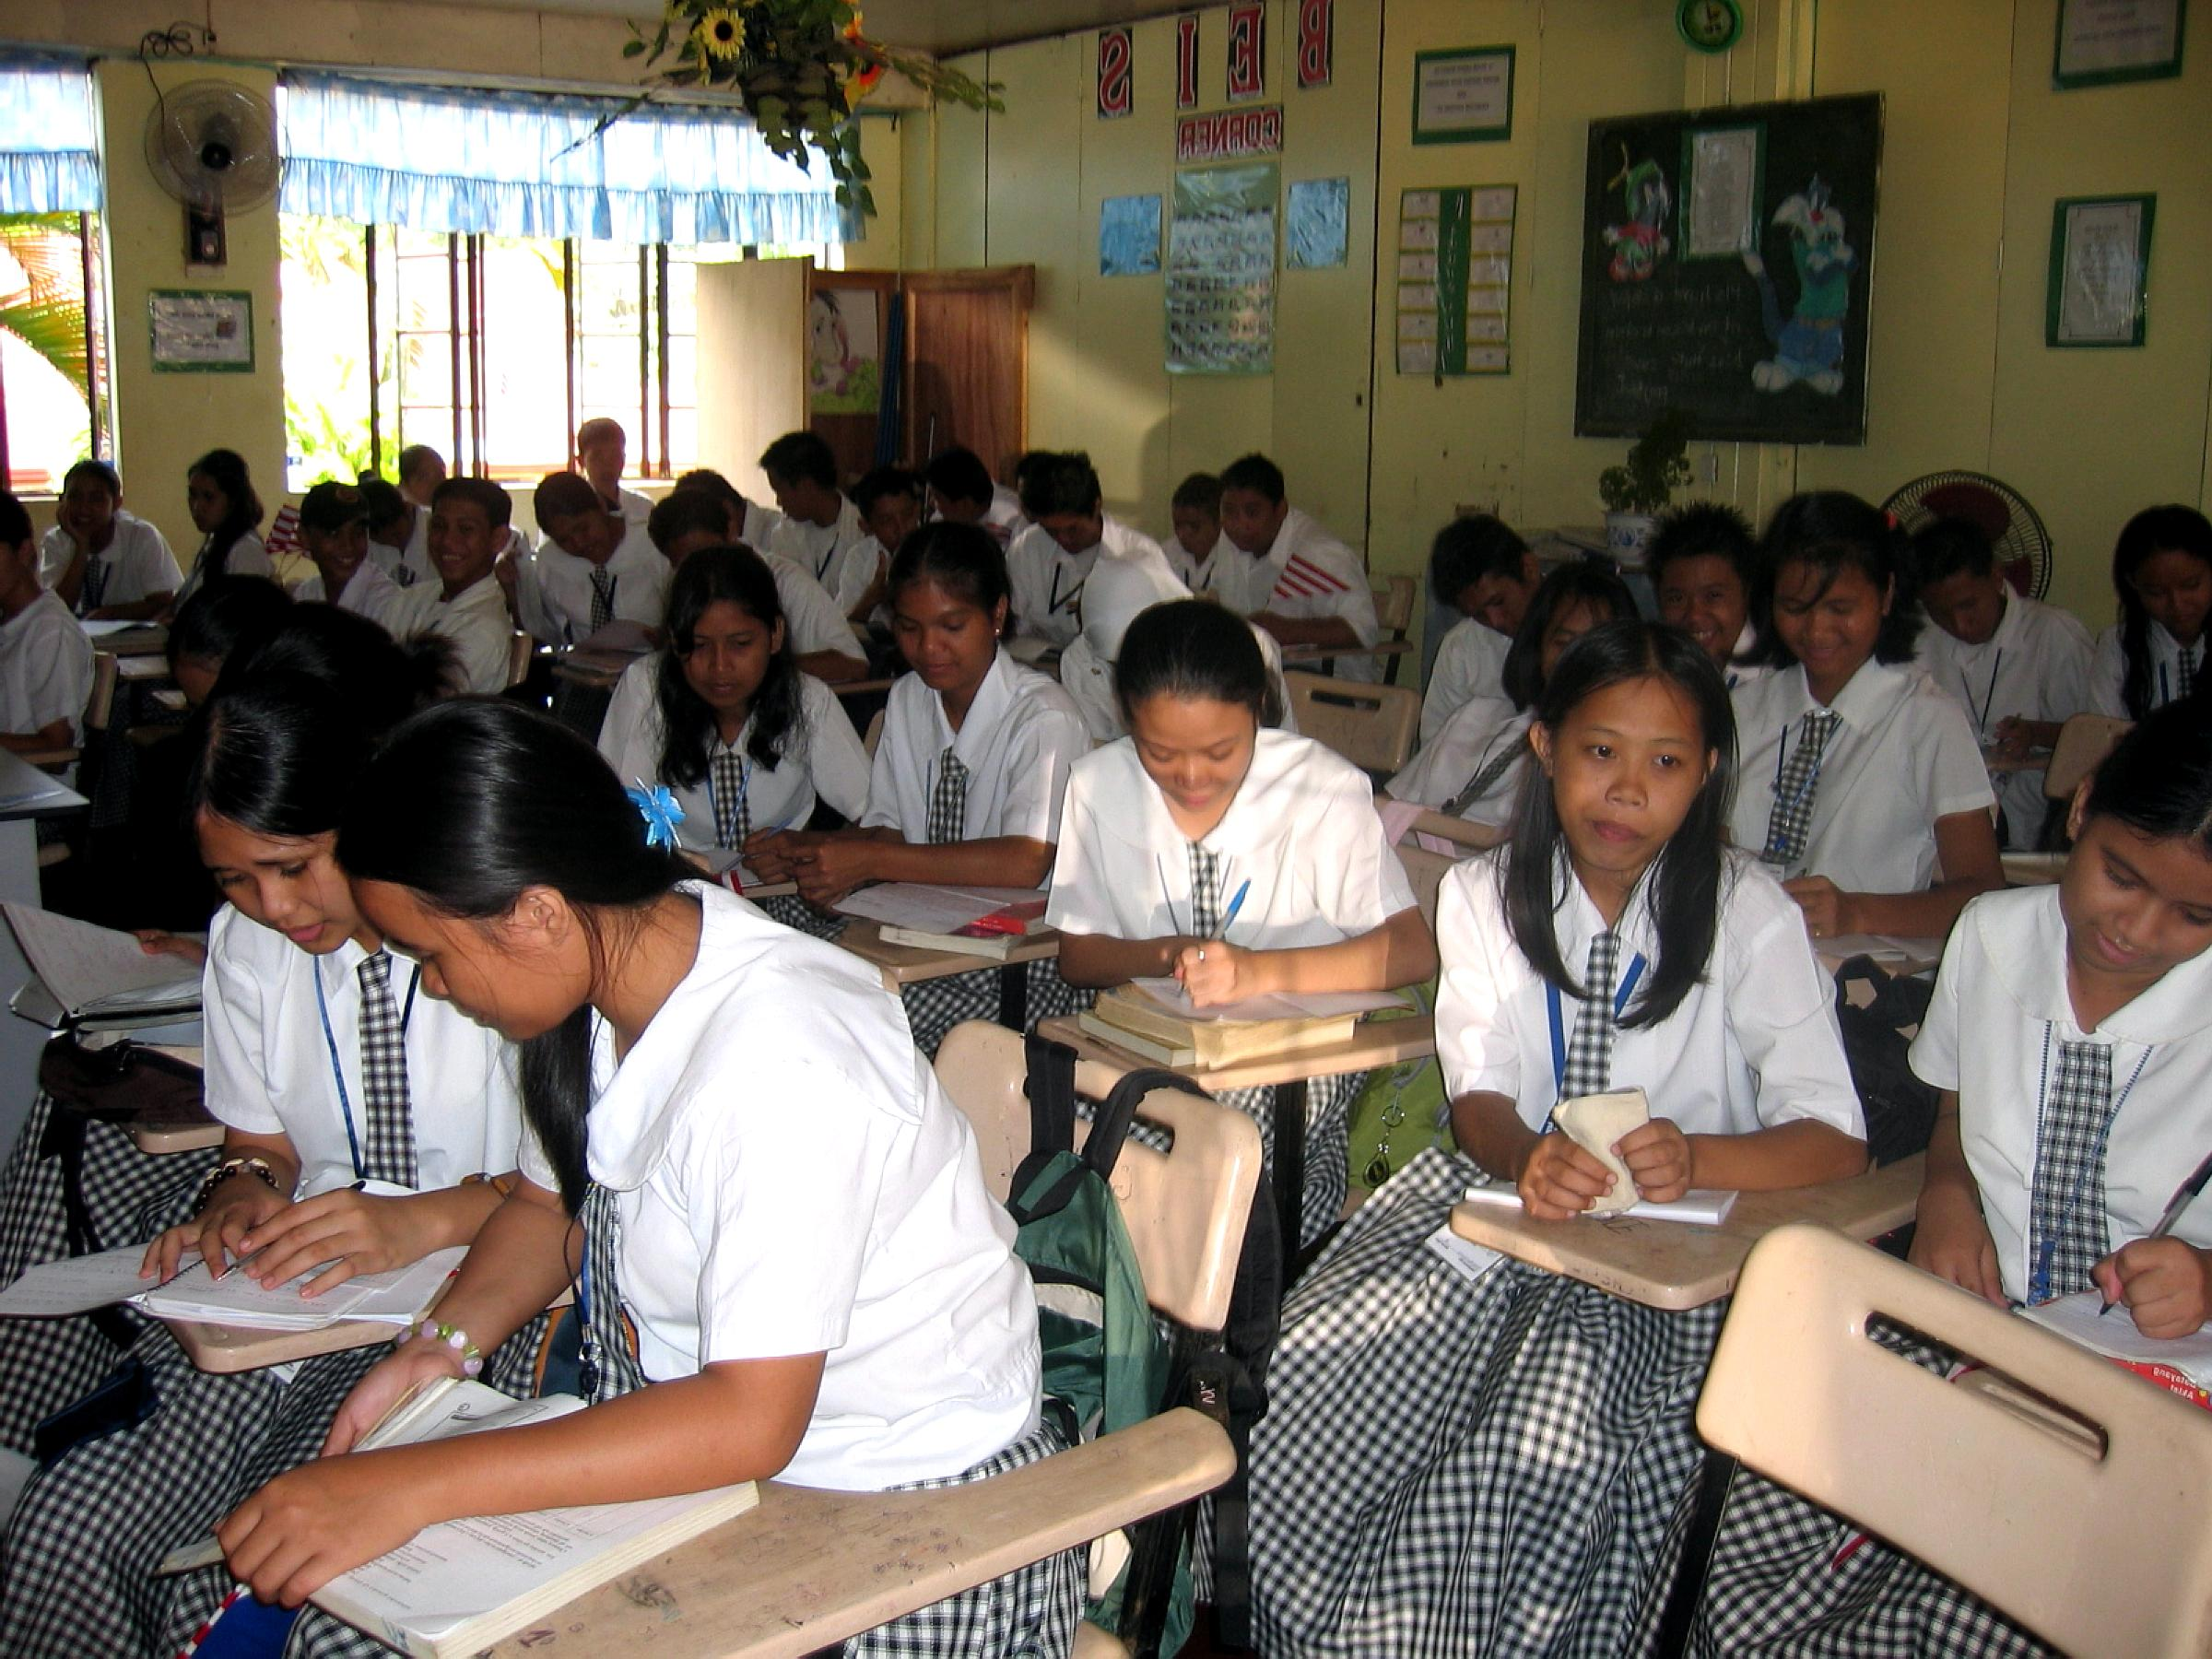 improved quality of education in philippine Quality of education - this is the first major issue that the philippine government should resolve but somehow it is recently improving the quality of philippine education has declined few years ago due to poor results from standard entrance tests conducted among elementary and secondary students, as well as the tertiary levels.